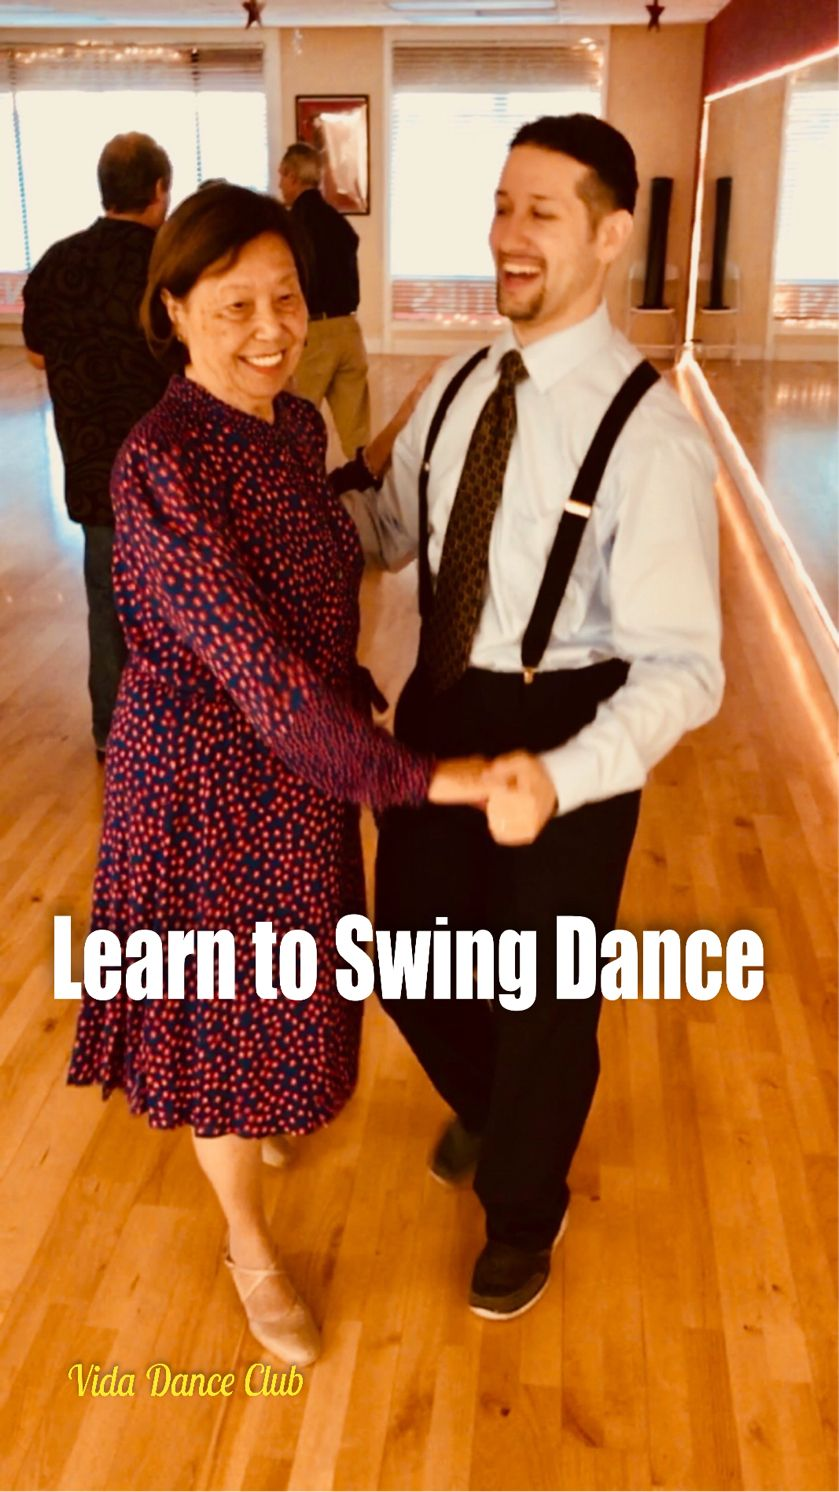 Swing The American Party Dance Ballroom Dance Lessons Dance Club Swing Dance Lessons